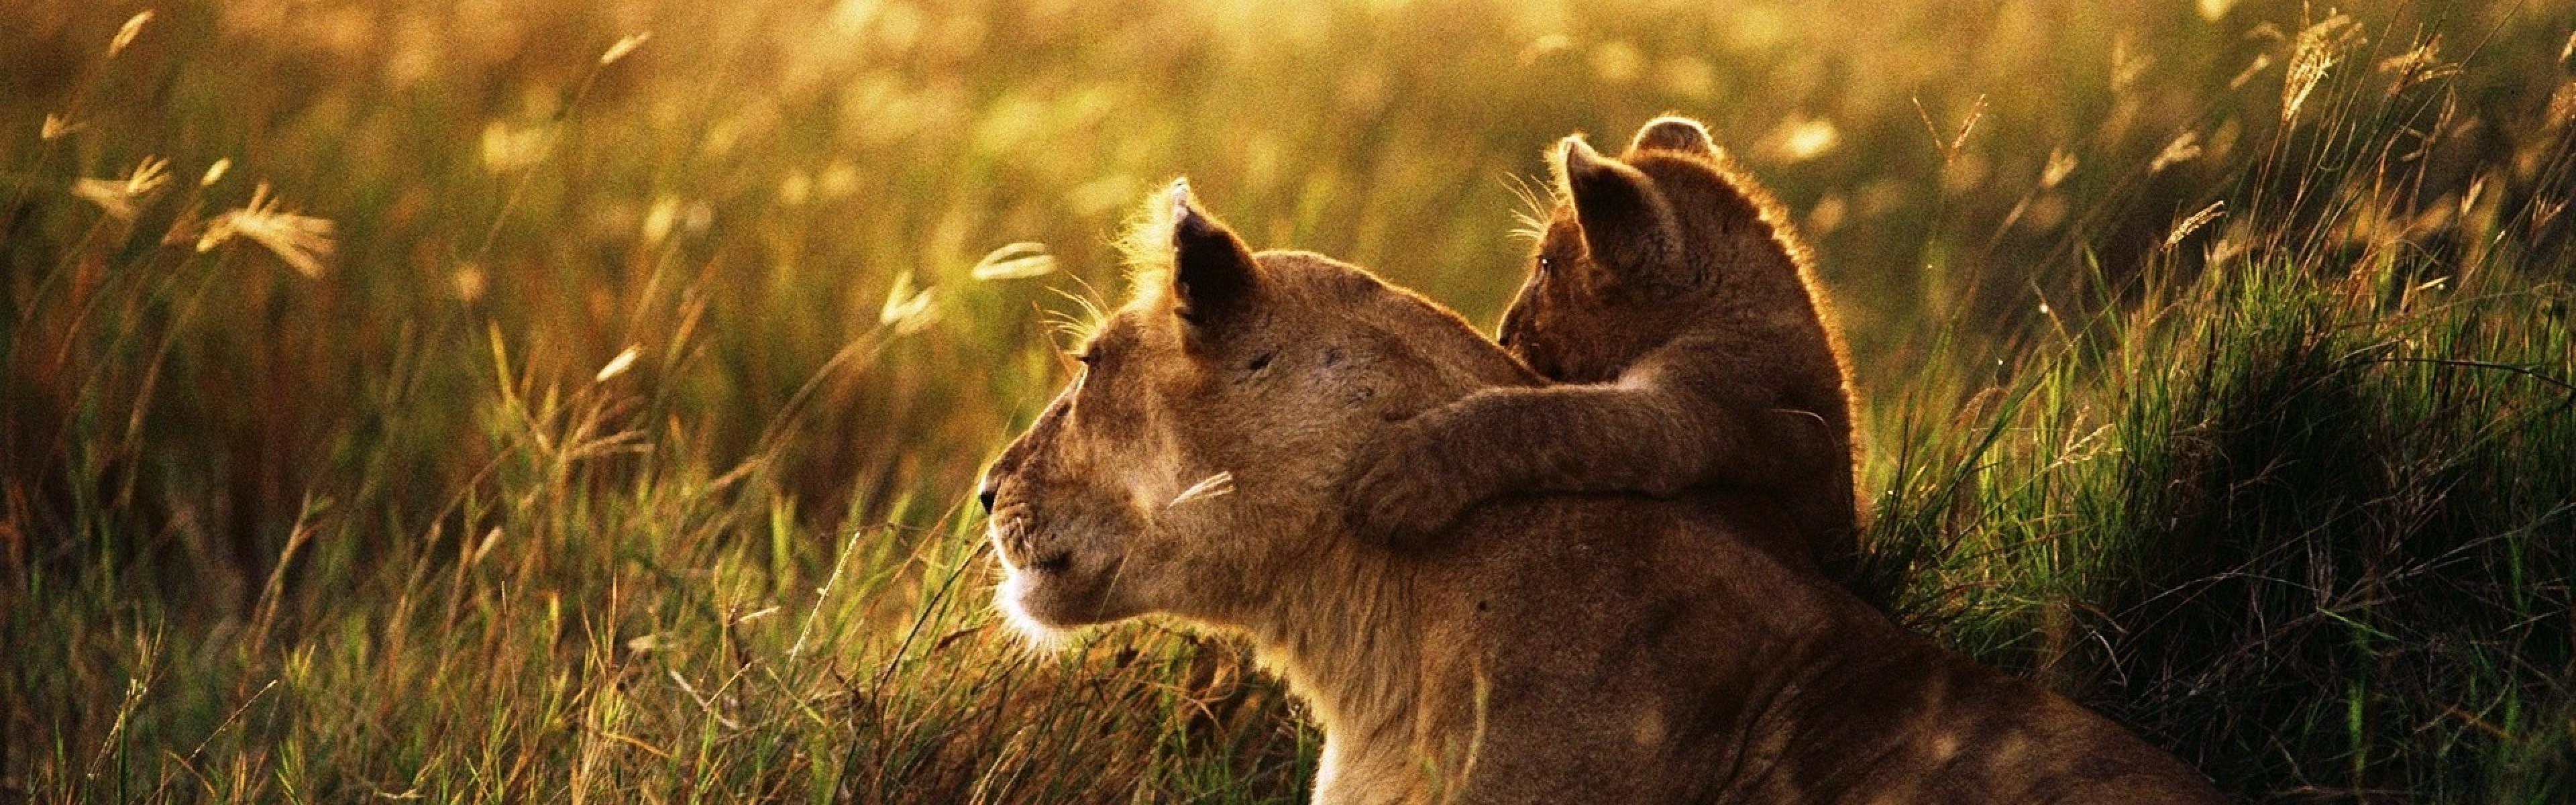 3840x1200  Wallpaper lion, lion cub, family, cub, caring, baby, sunshine